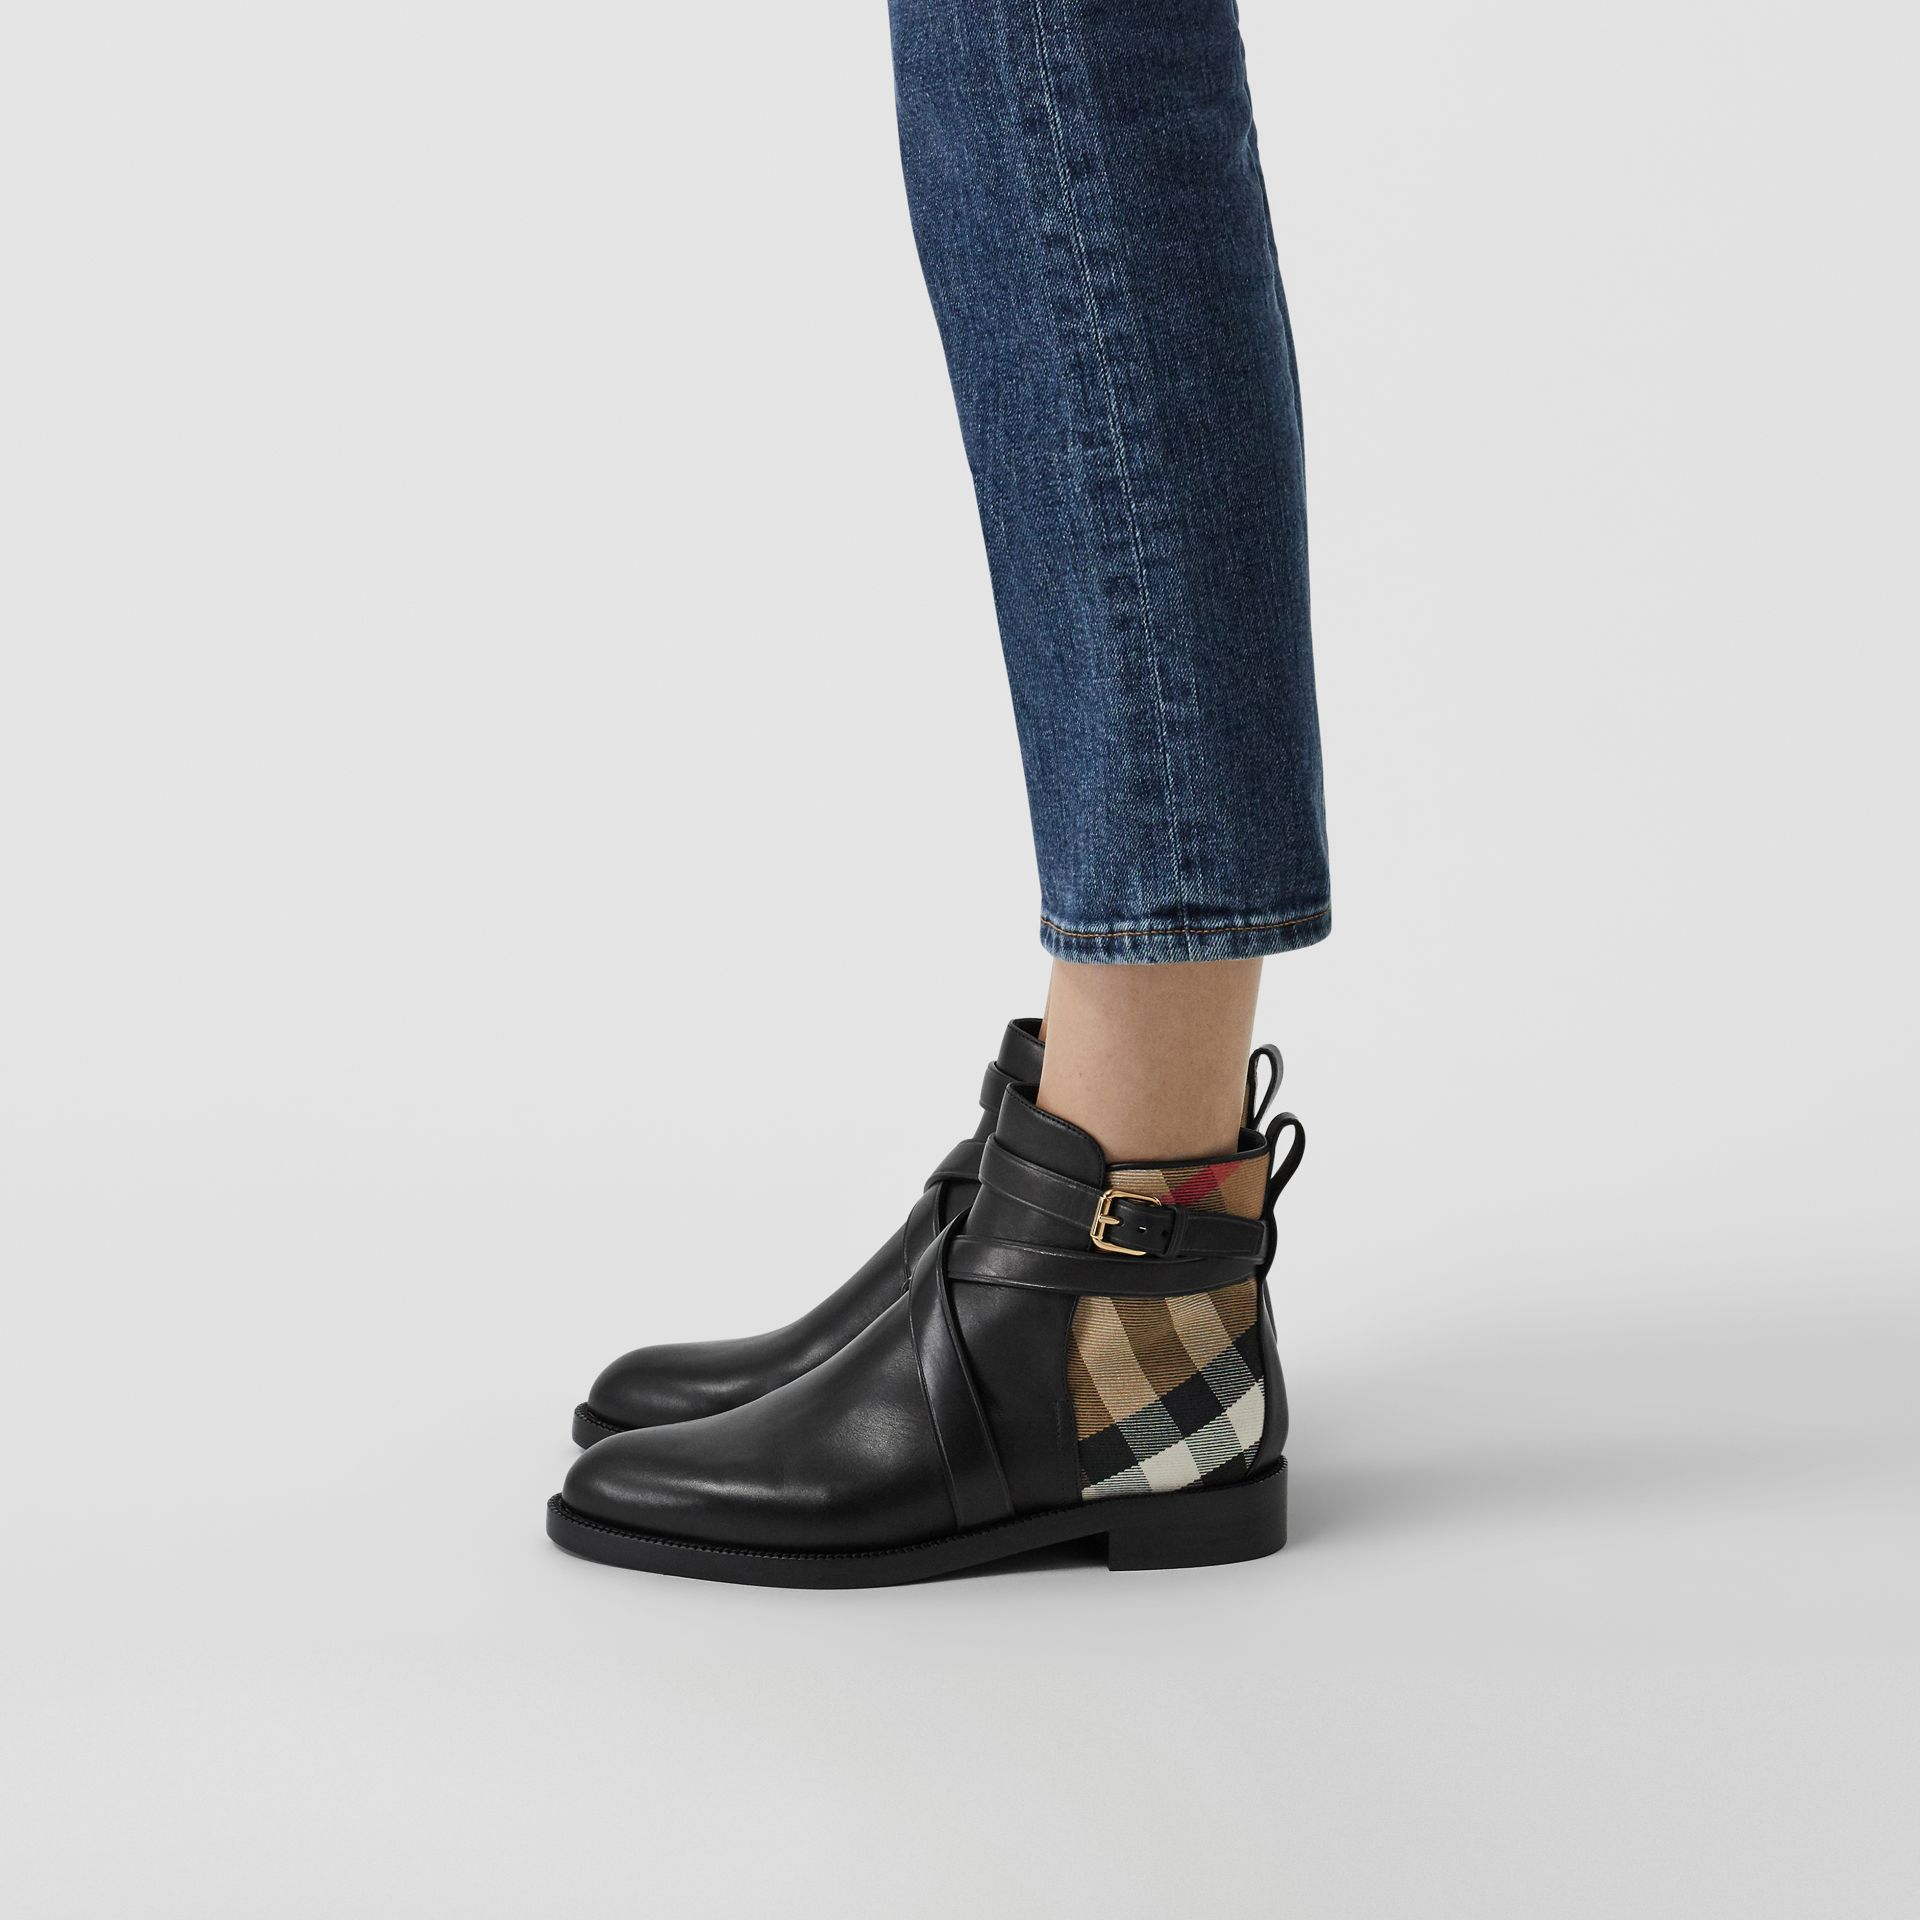 House Check and Leather Ankle Boots in Black - Women | Burberry United States - gallery image 2